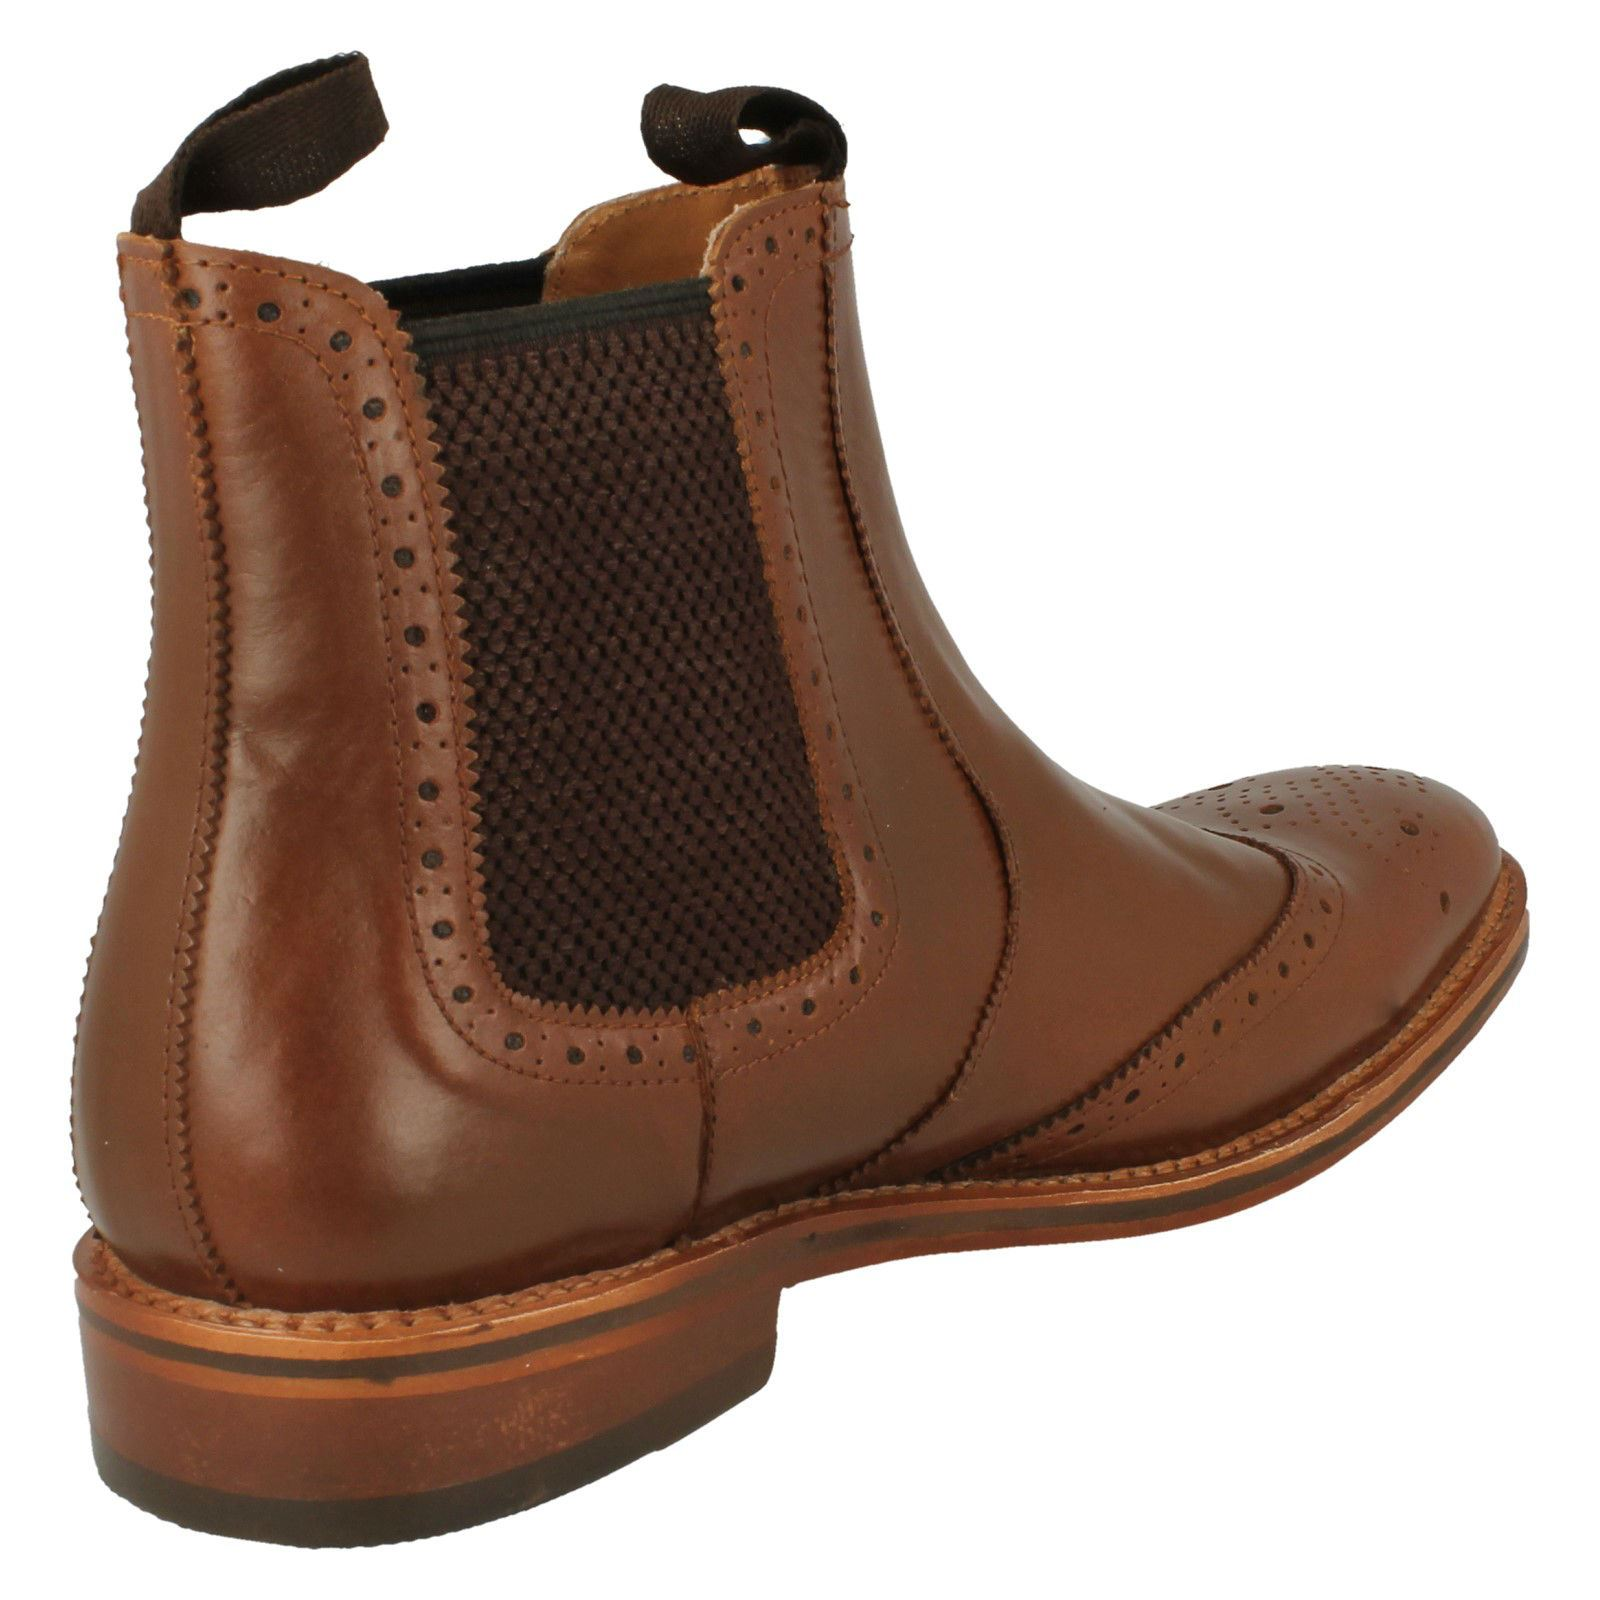 Mens-Catesby-Ankle-Boots-MCATESCW158T thumbnail 3